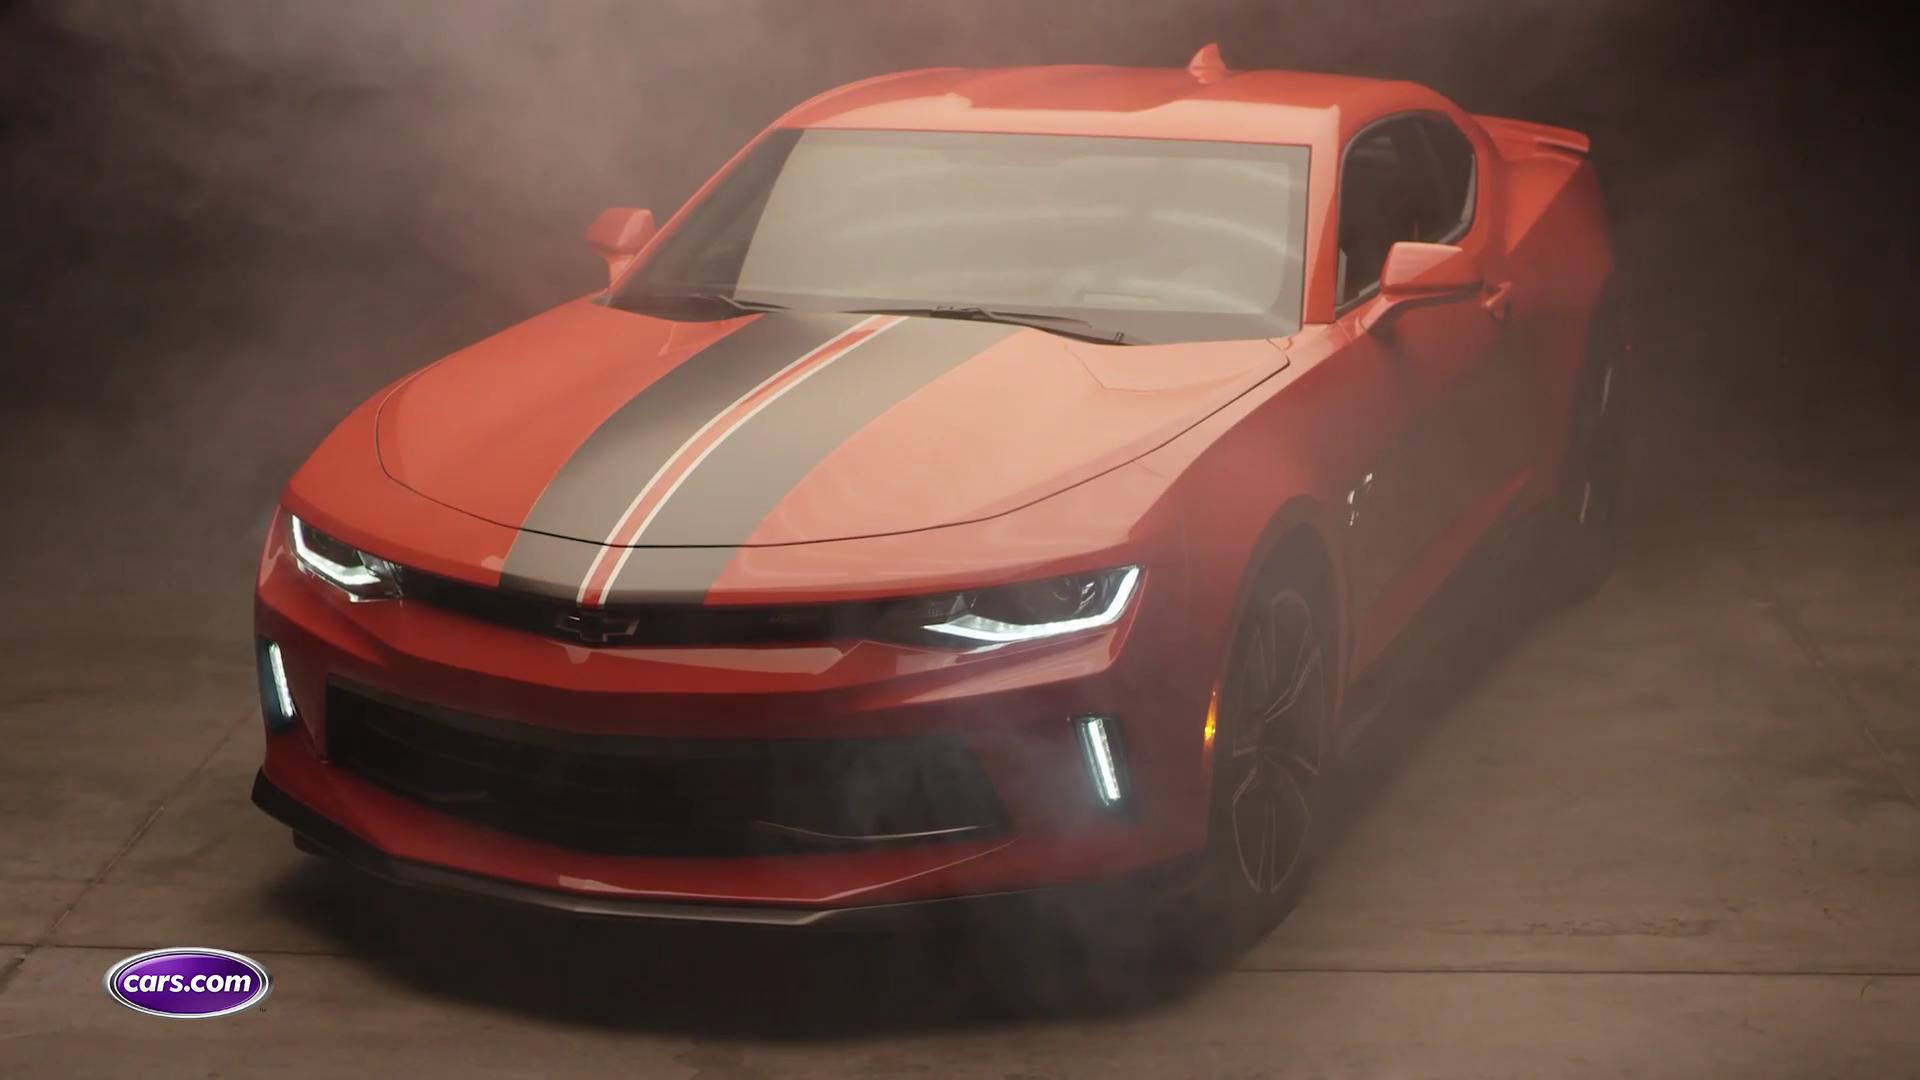 Video: 2018 Chevrolet Camaro Hot Wheels 50th Anniversary Edition at SEMA